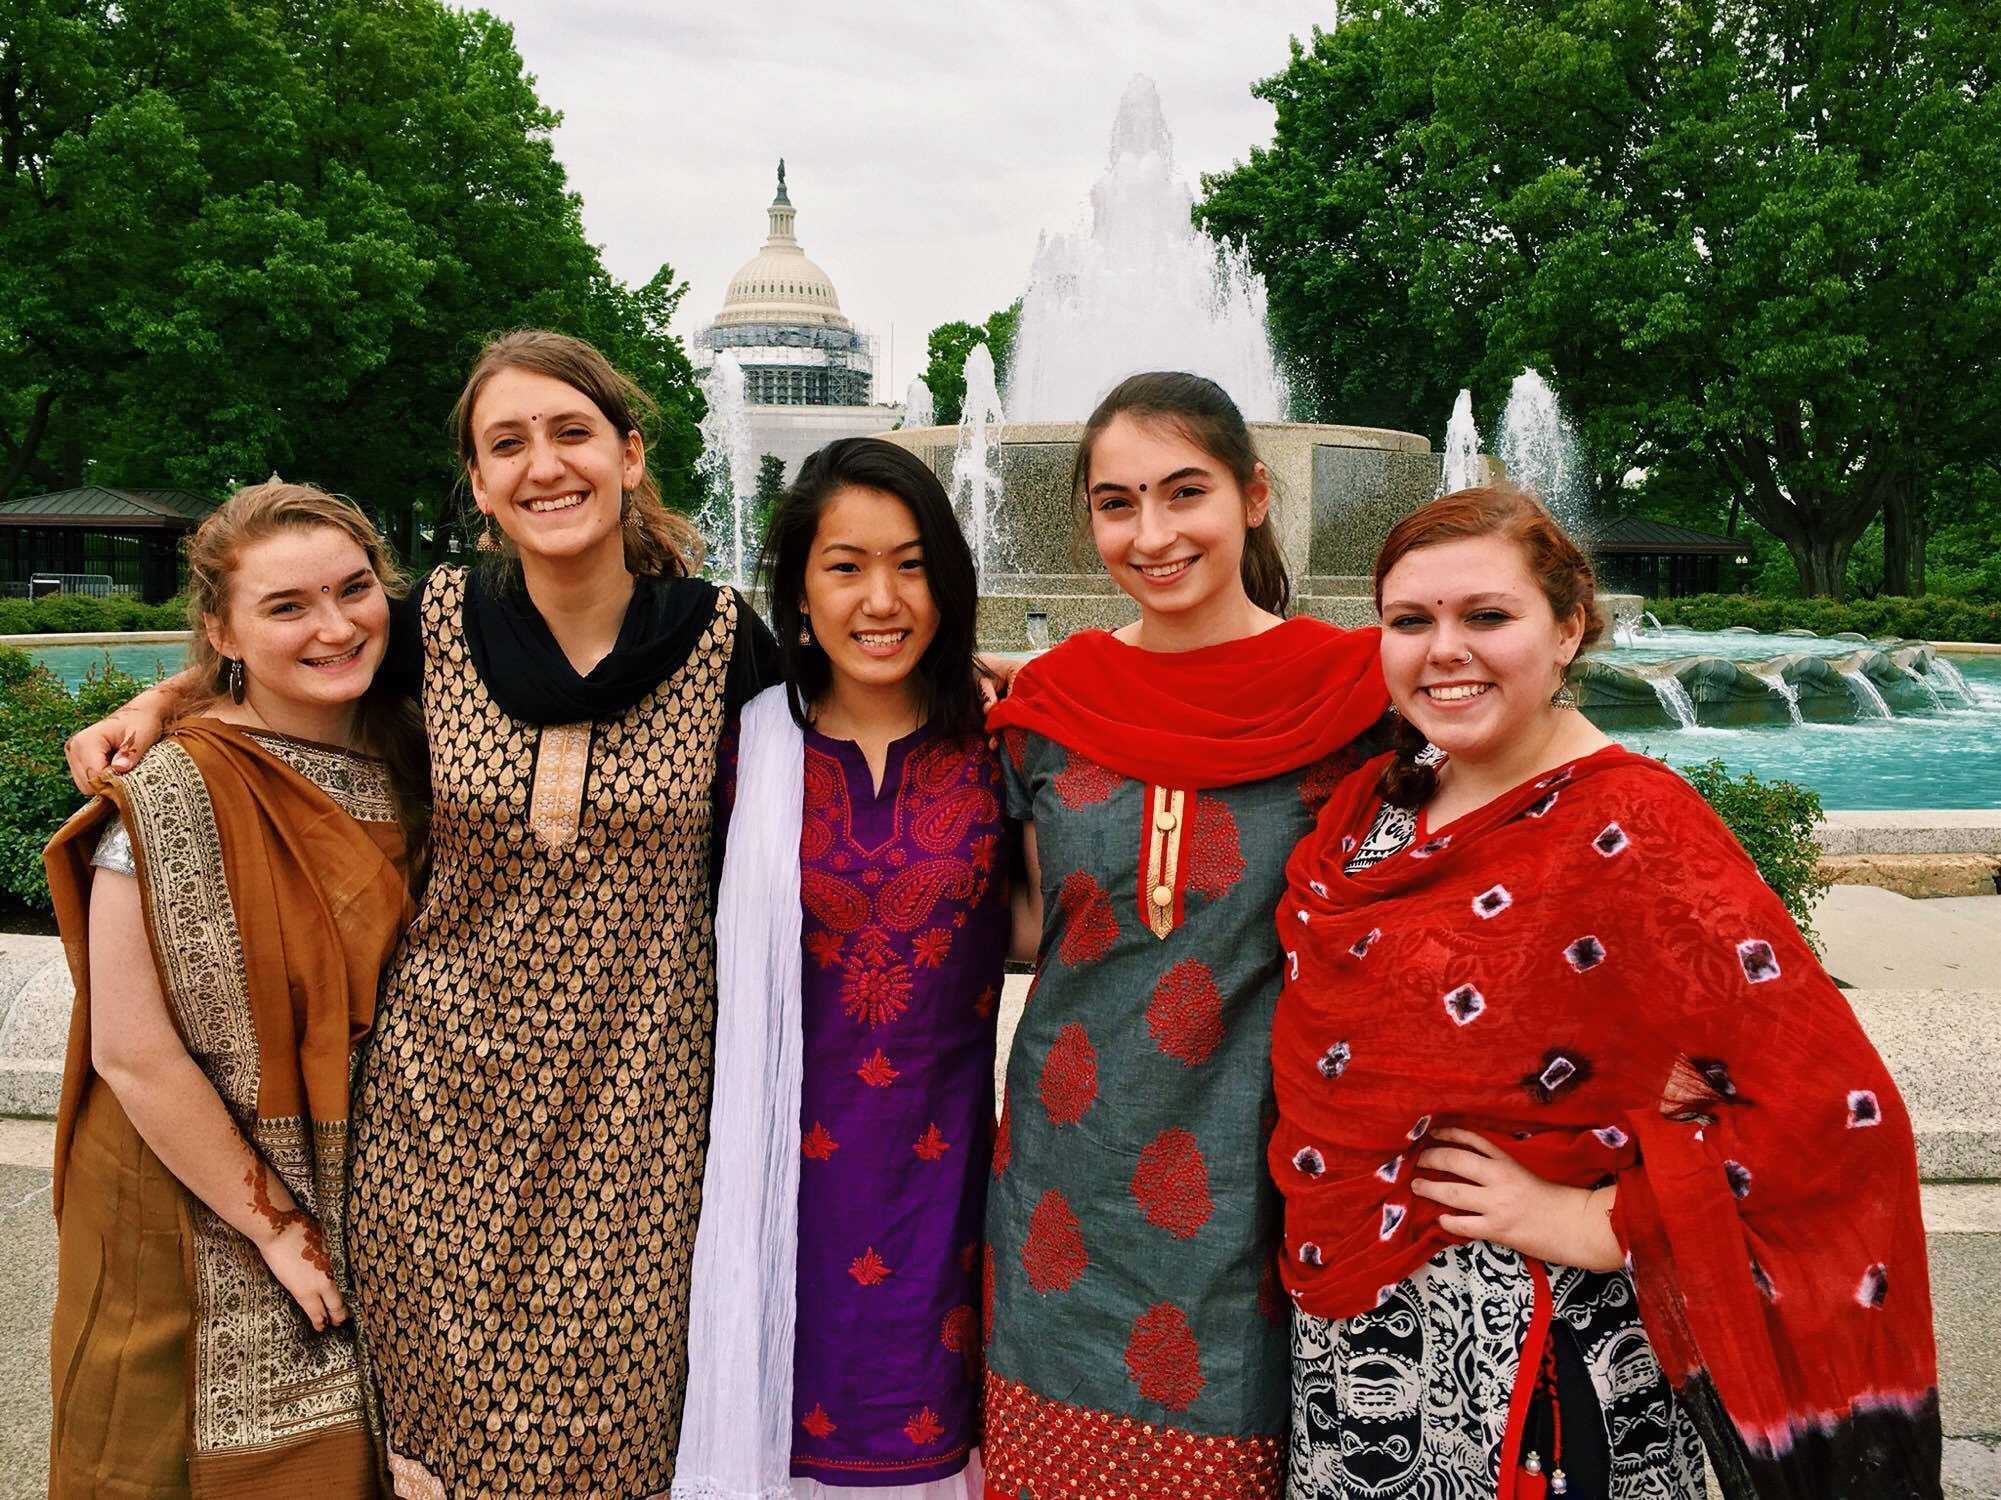 Senior Kat Lewis made many friends during her year abroad in India.